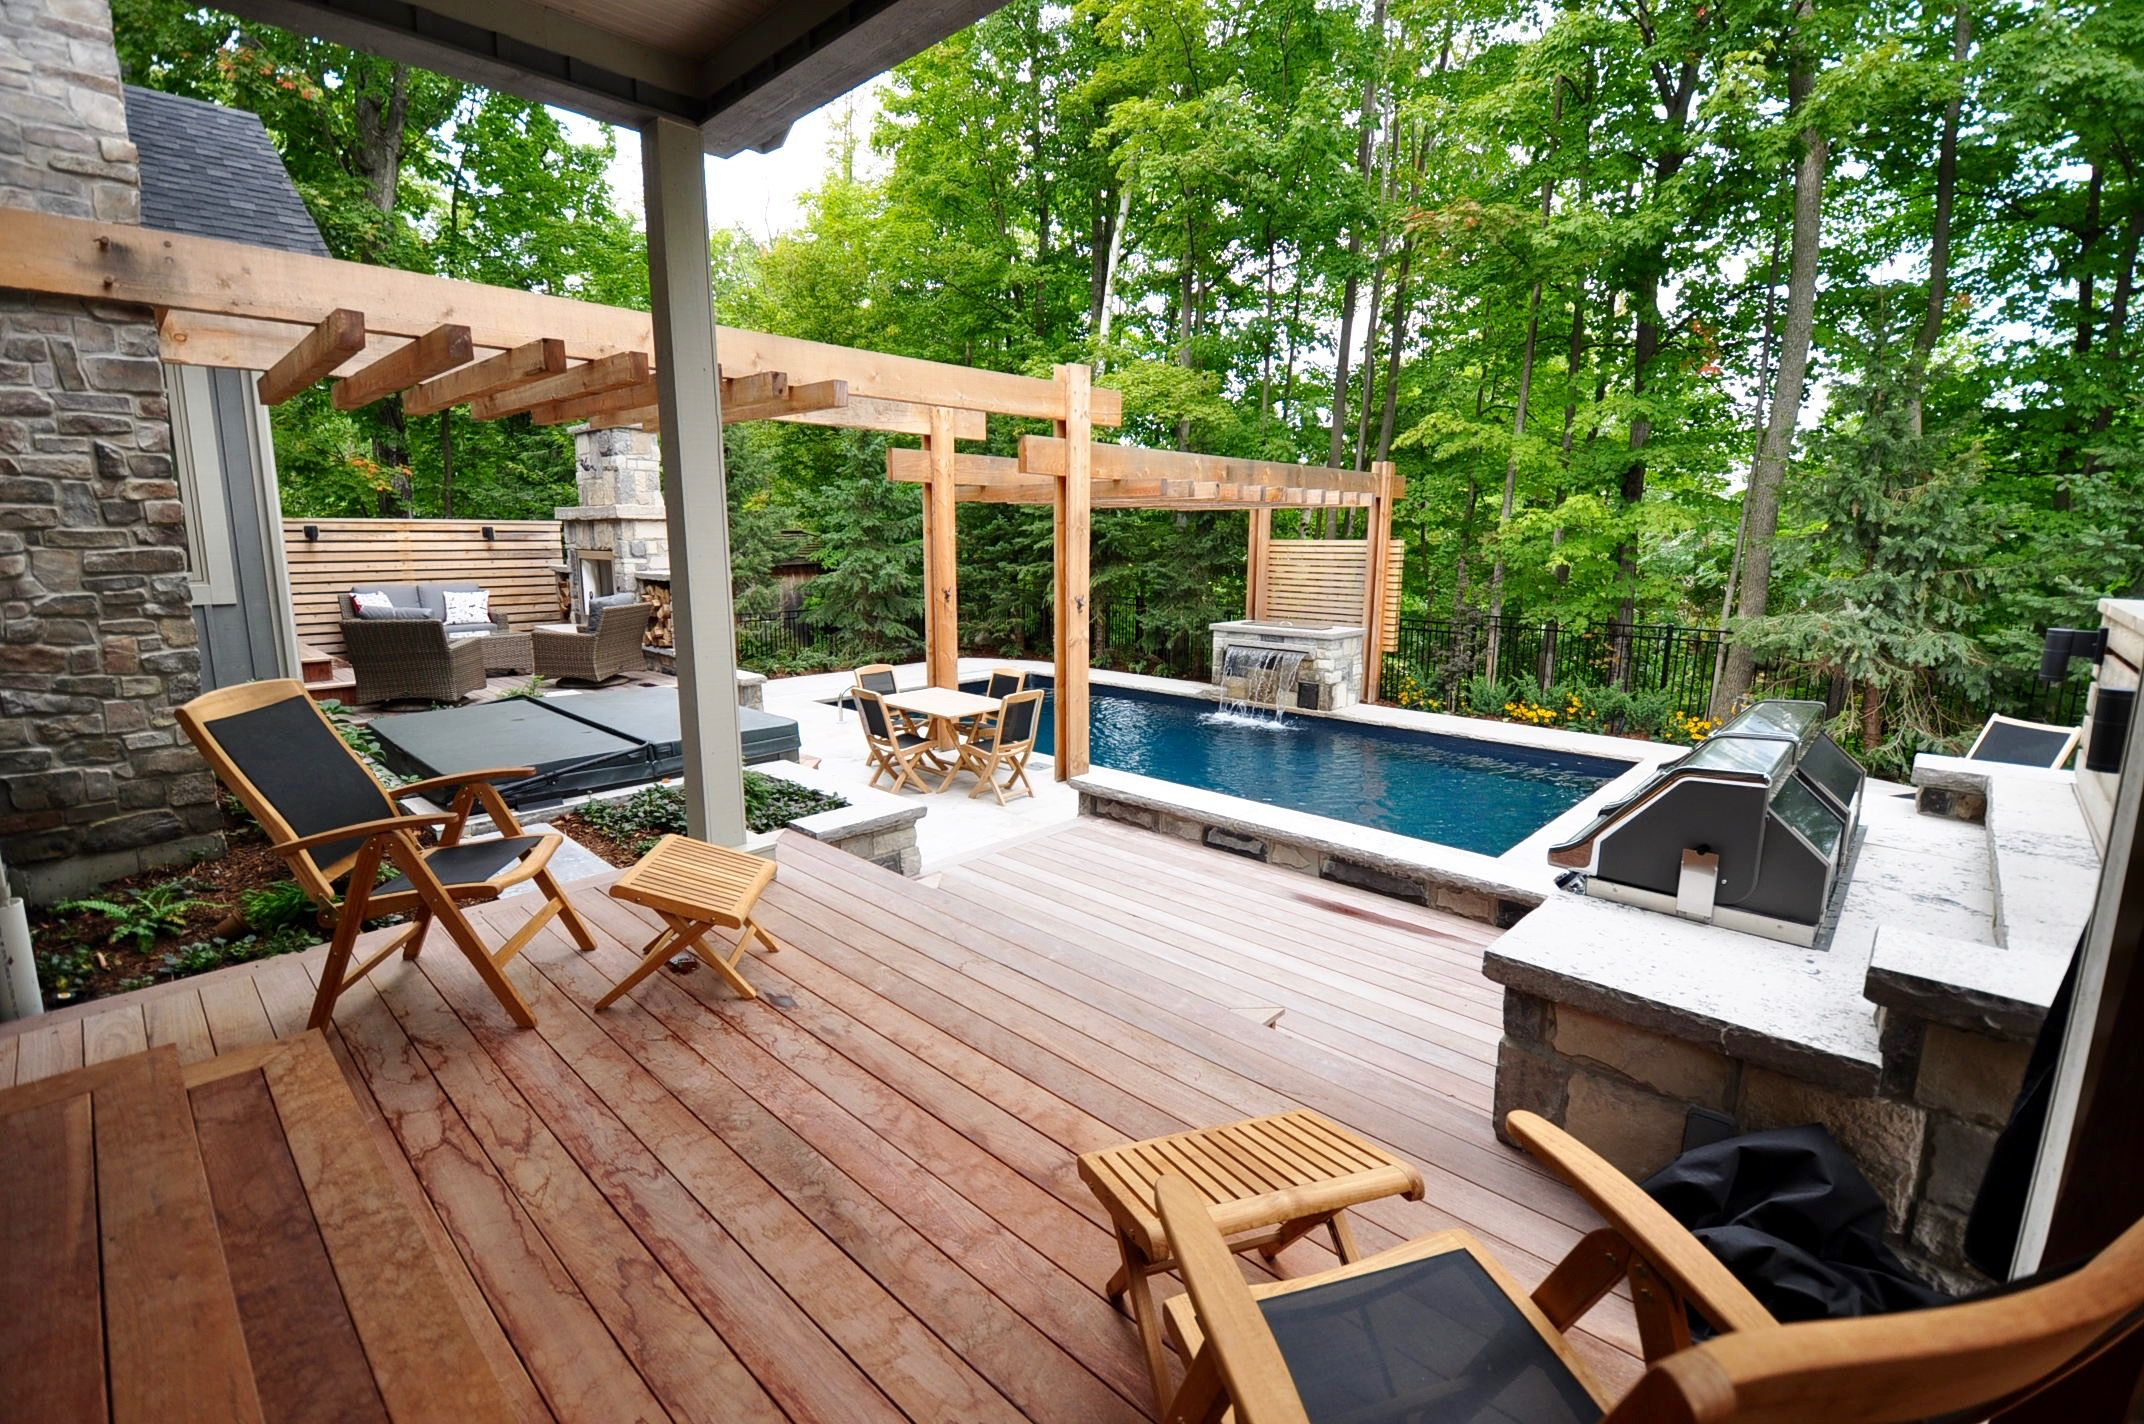 Teak Chairs Outside Kitchen Door Invite You To Sit And Enjoy The Outdoor Living Space Backyard Spaces Outdoor Living Space Outdoor Living